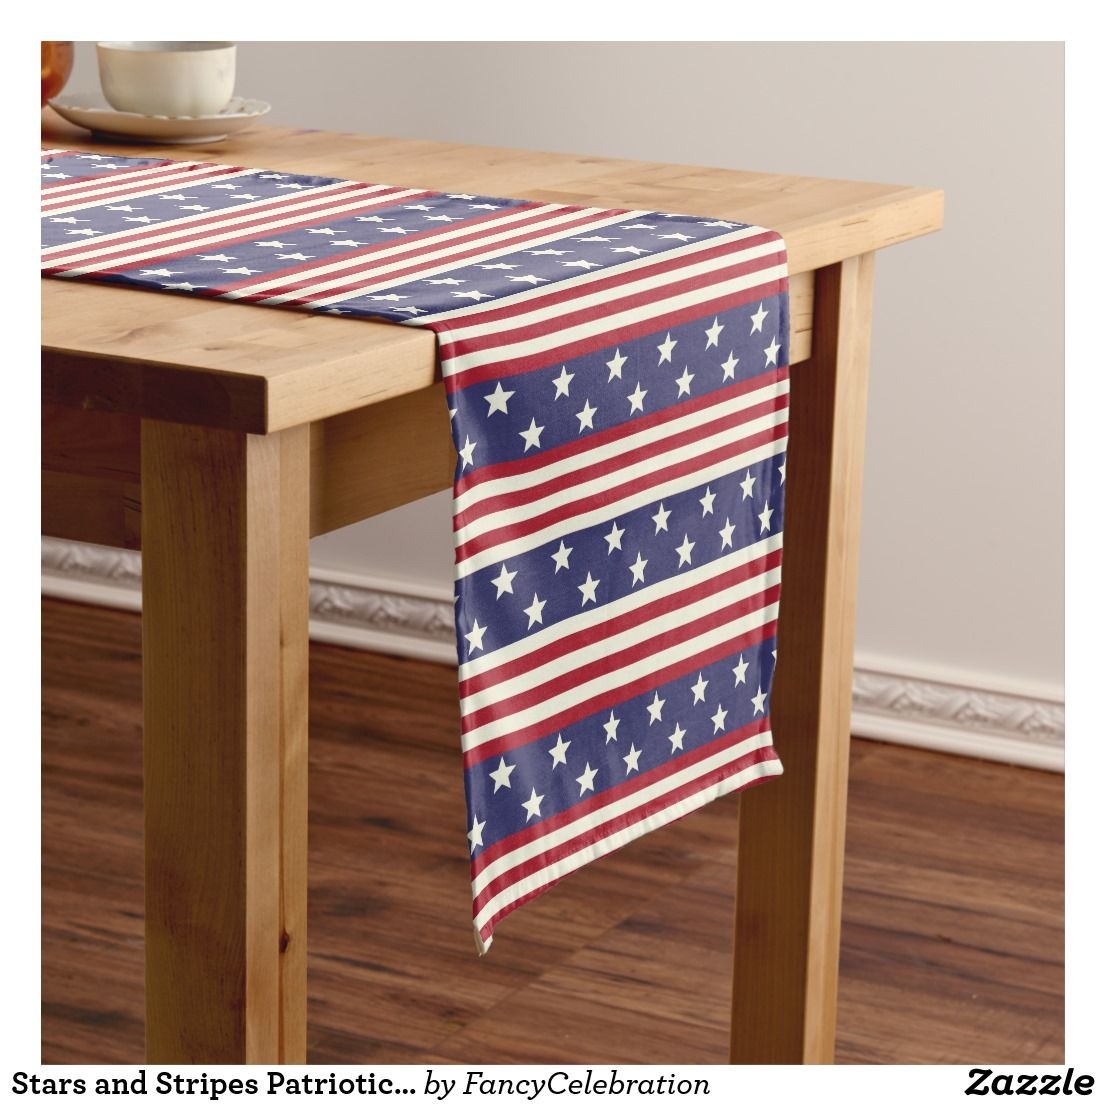 Stars and Stripes Placemats Fourth of July Placemats Patriotic Decor American Flag Placemats Table Setting Memorial Day Placemats